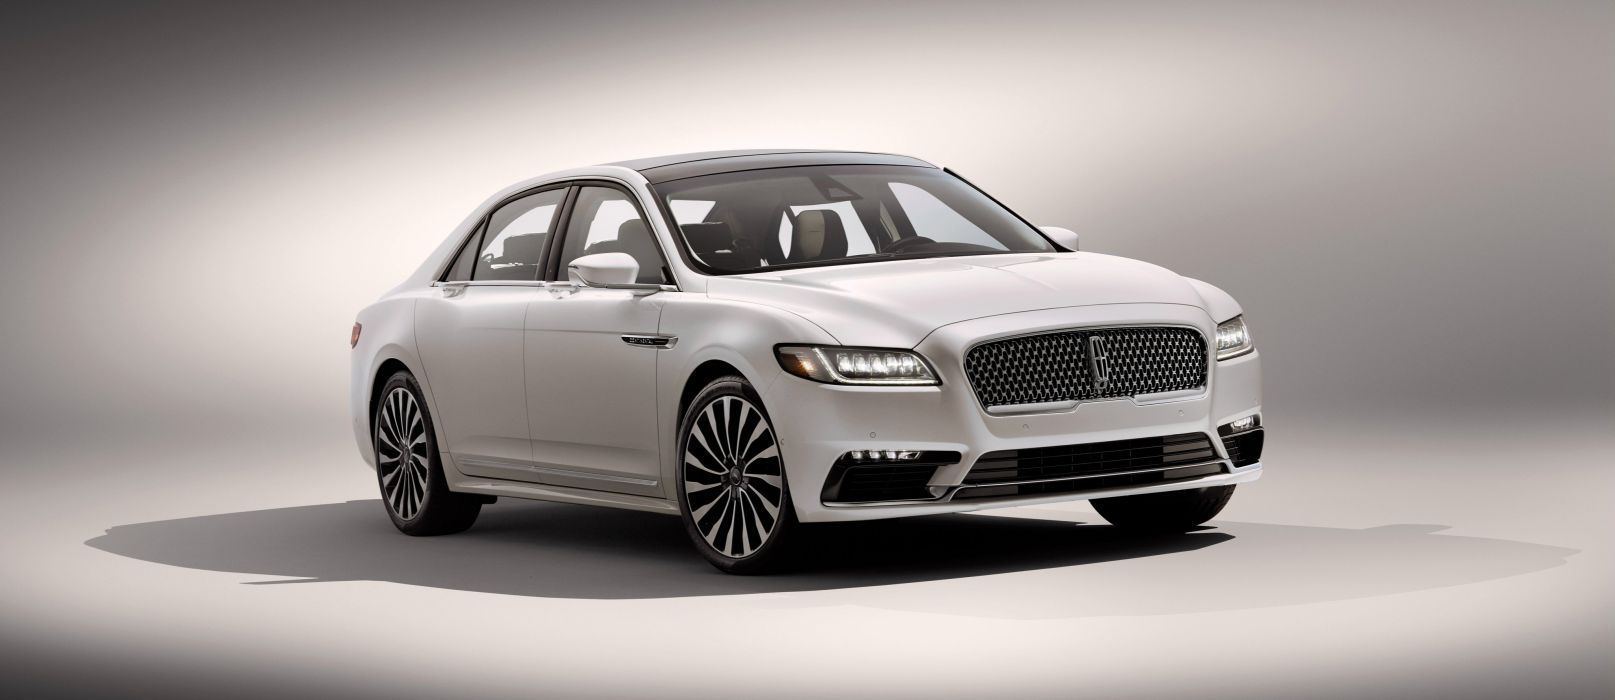 2017 Lincoln Continental luxury wallpaper